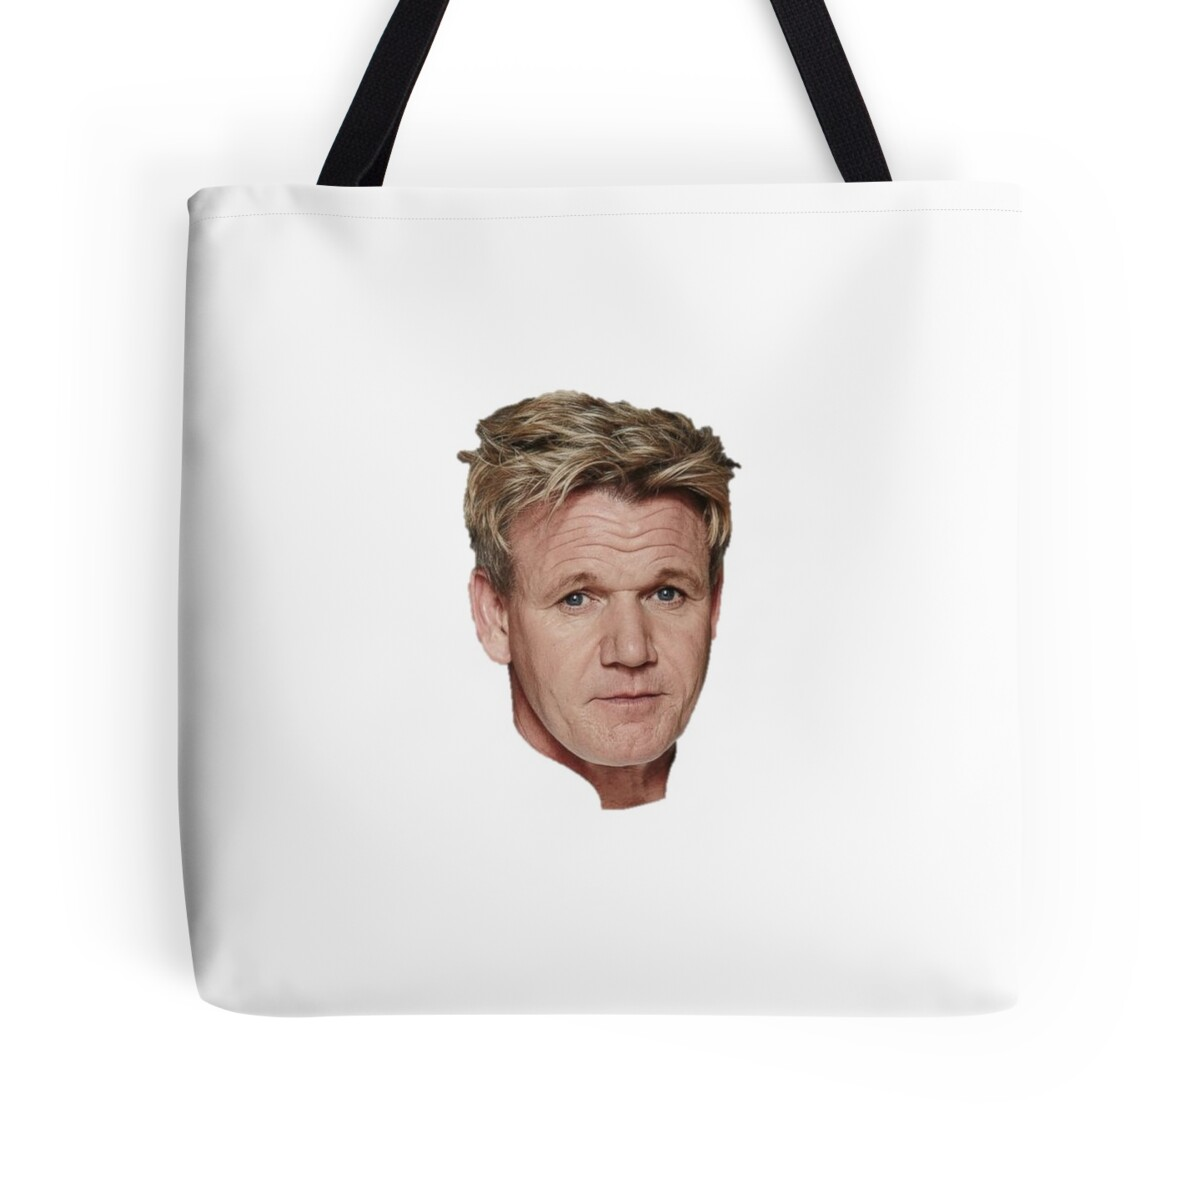 Gordon Ramsay Kitchen Nightmares Food Network Face\